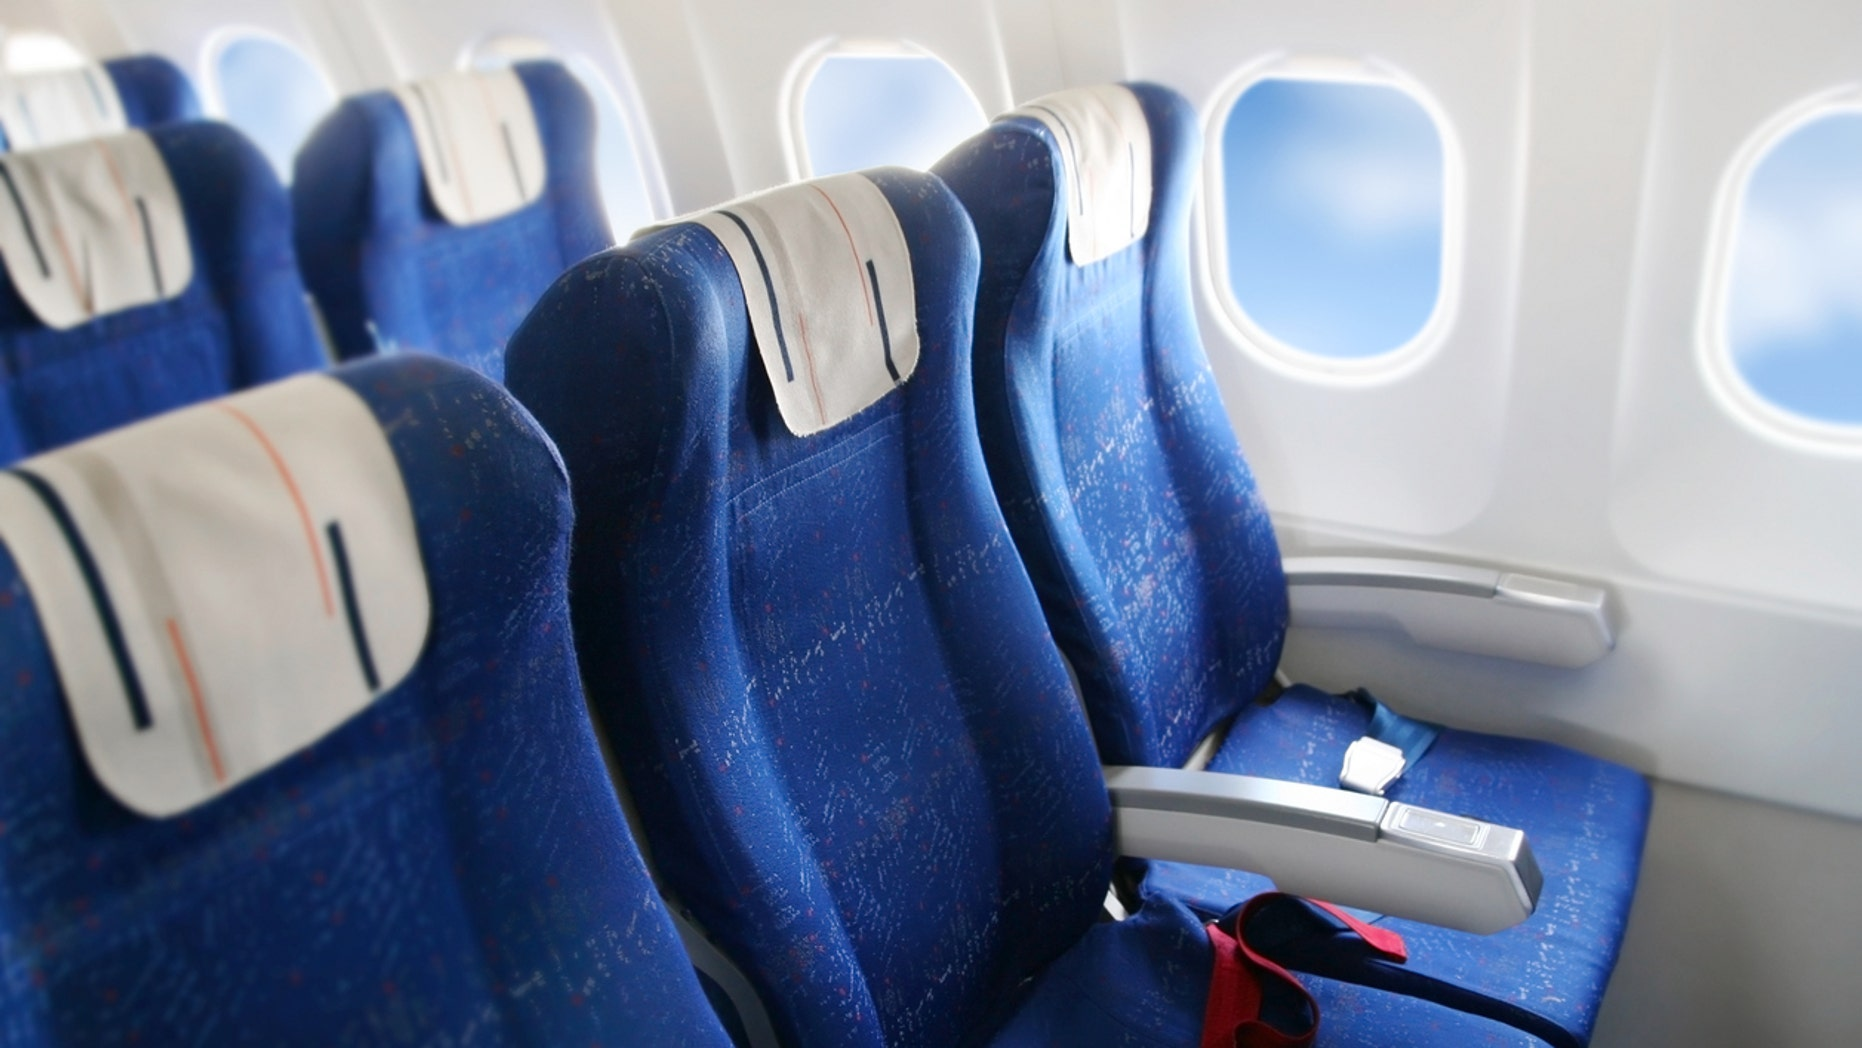 The phenomenon of the disappearing plane window is reportedly becoming more common.